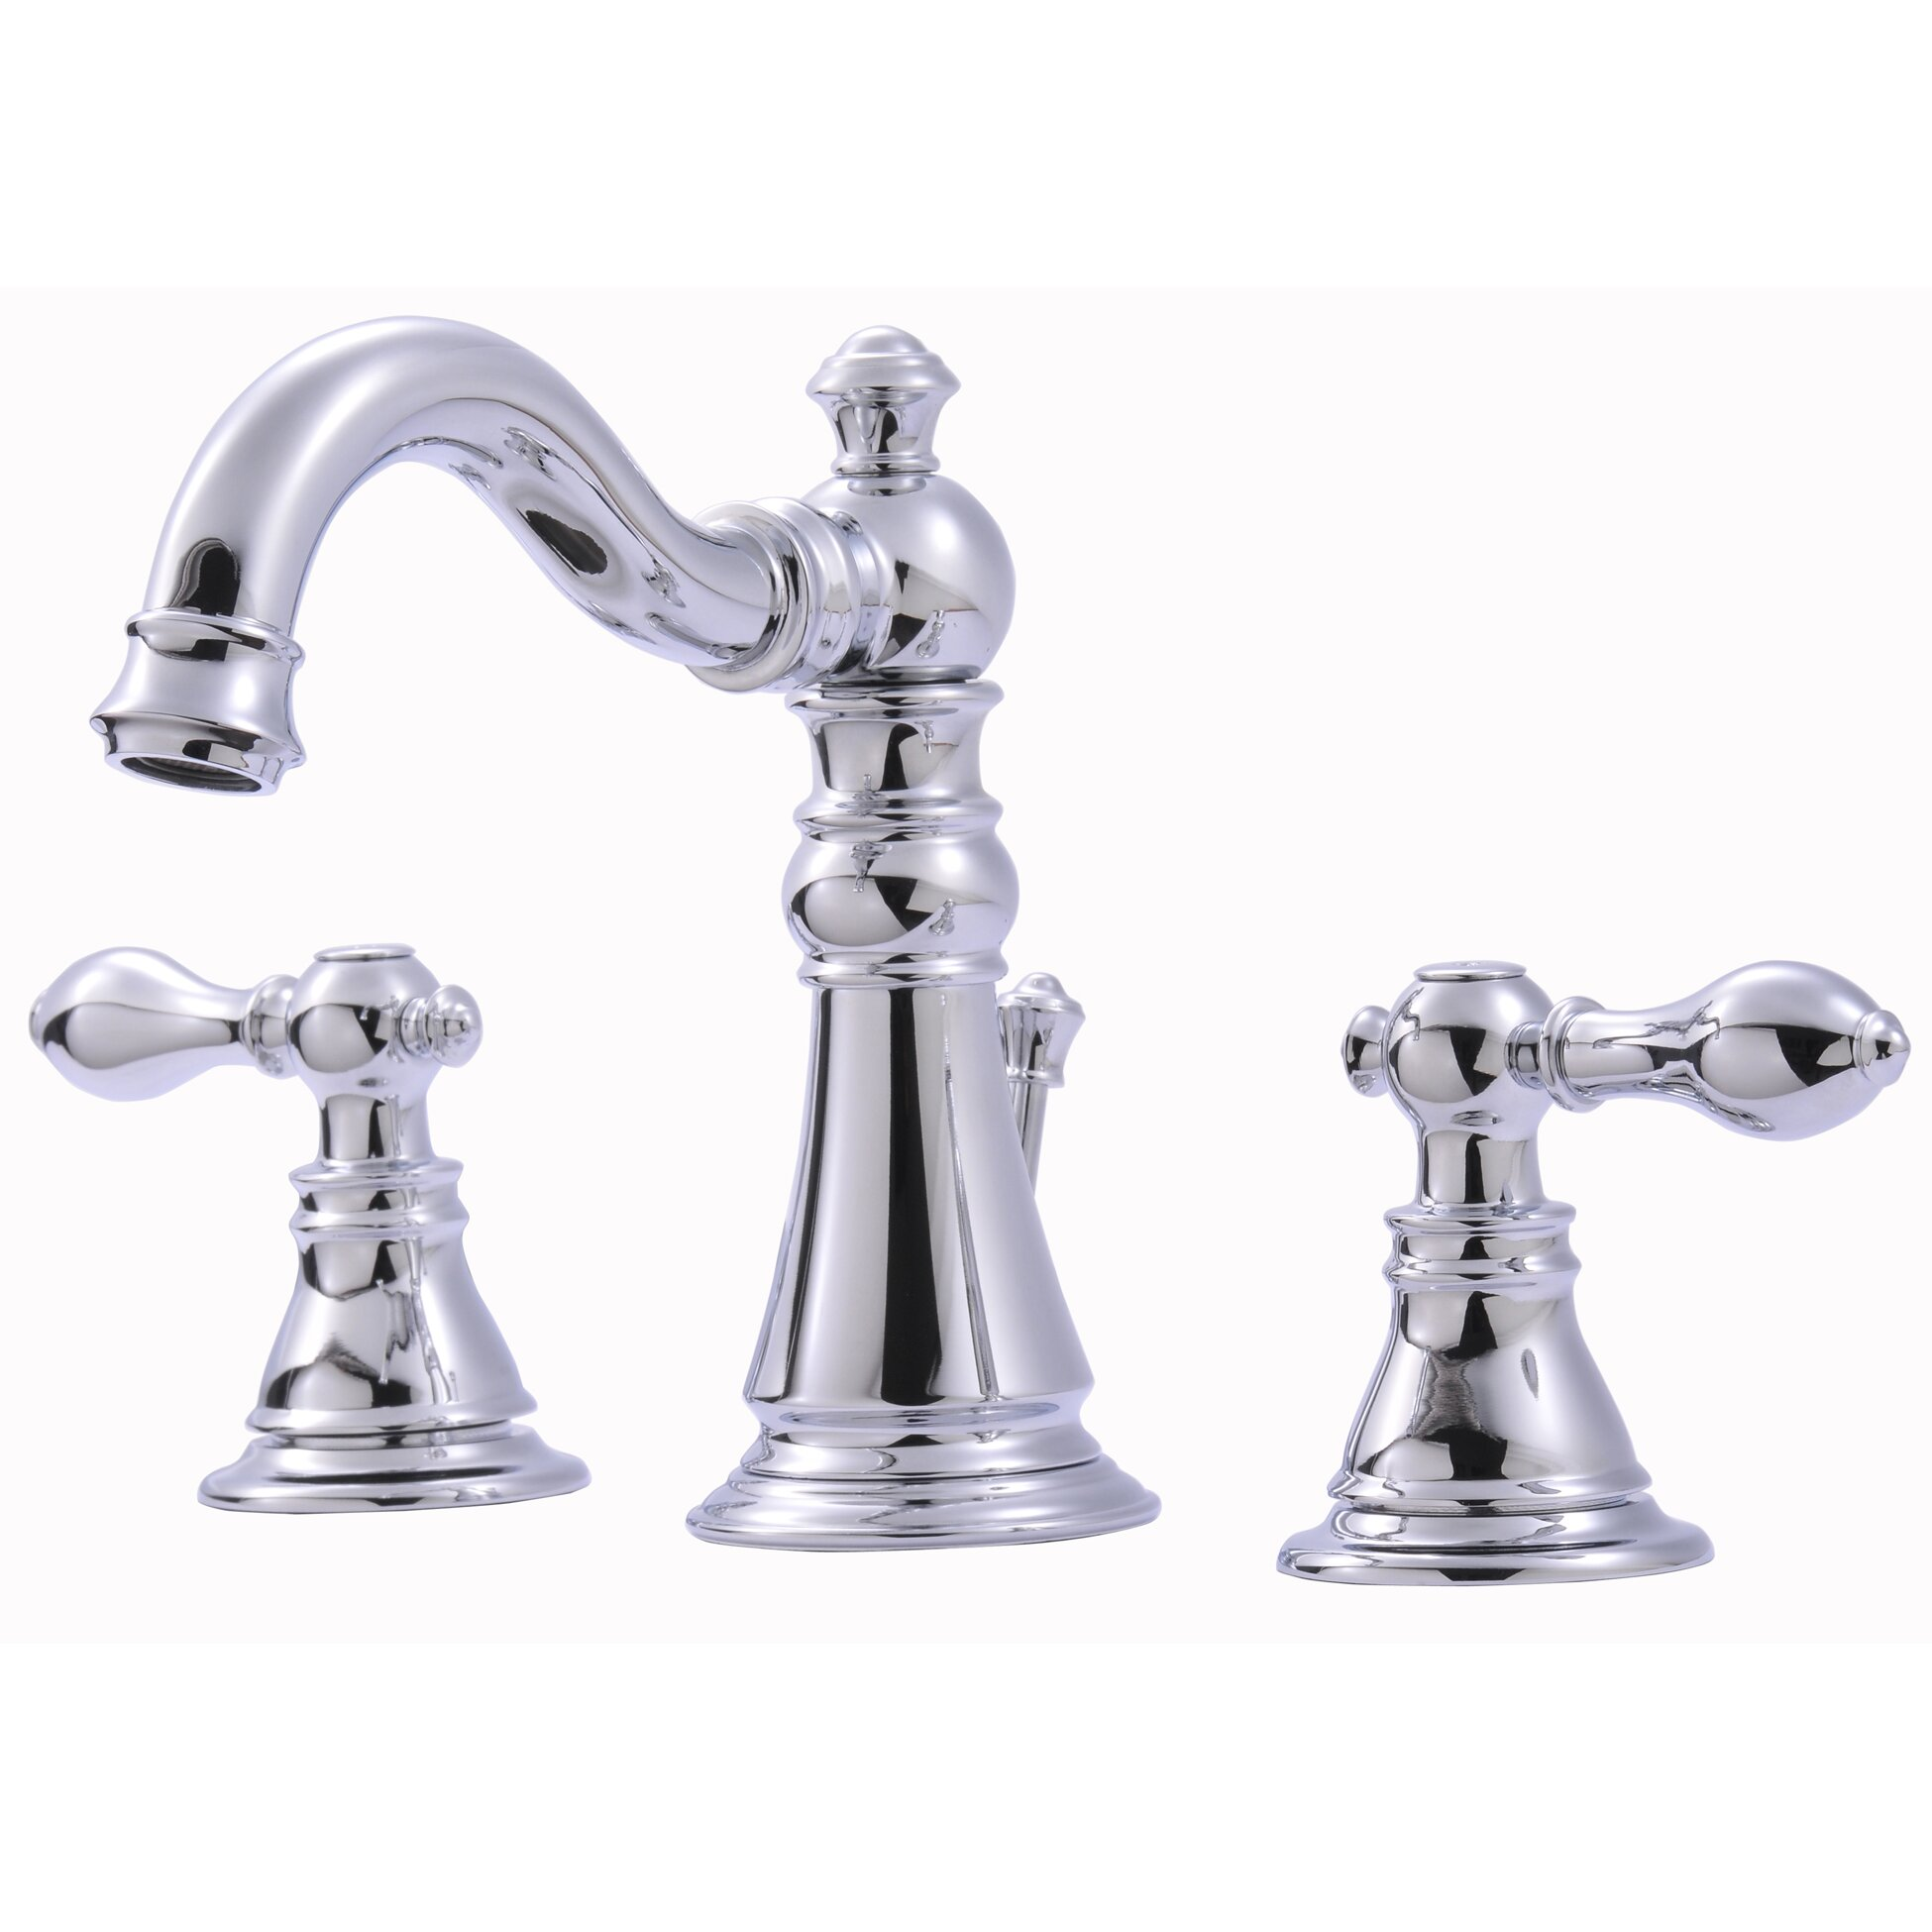 Bathroom Faucet Fixtures : Bathroom Fixtures ... Widespread Bathroom Sink Faucets Ultra Faucets ...